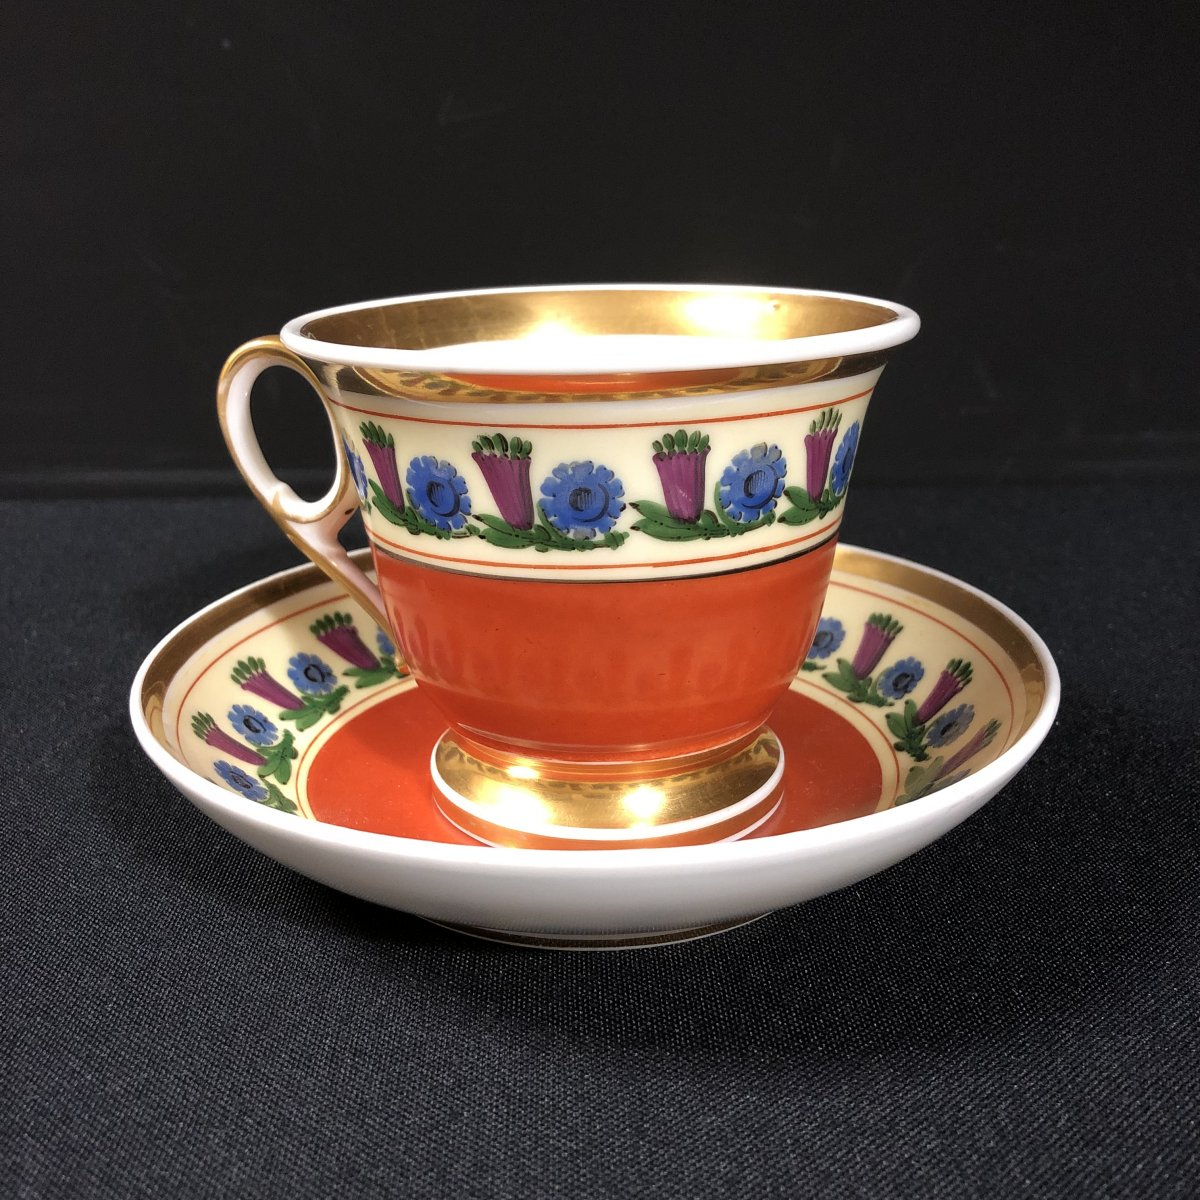 Chocolate Cup And Saucer In Paris Porcelain